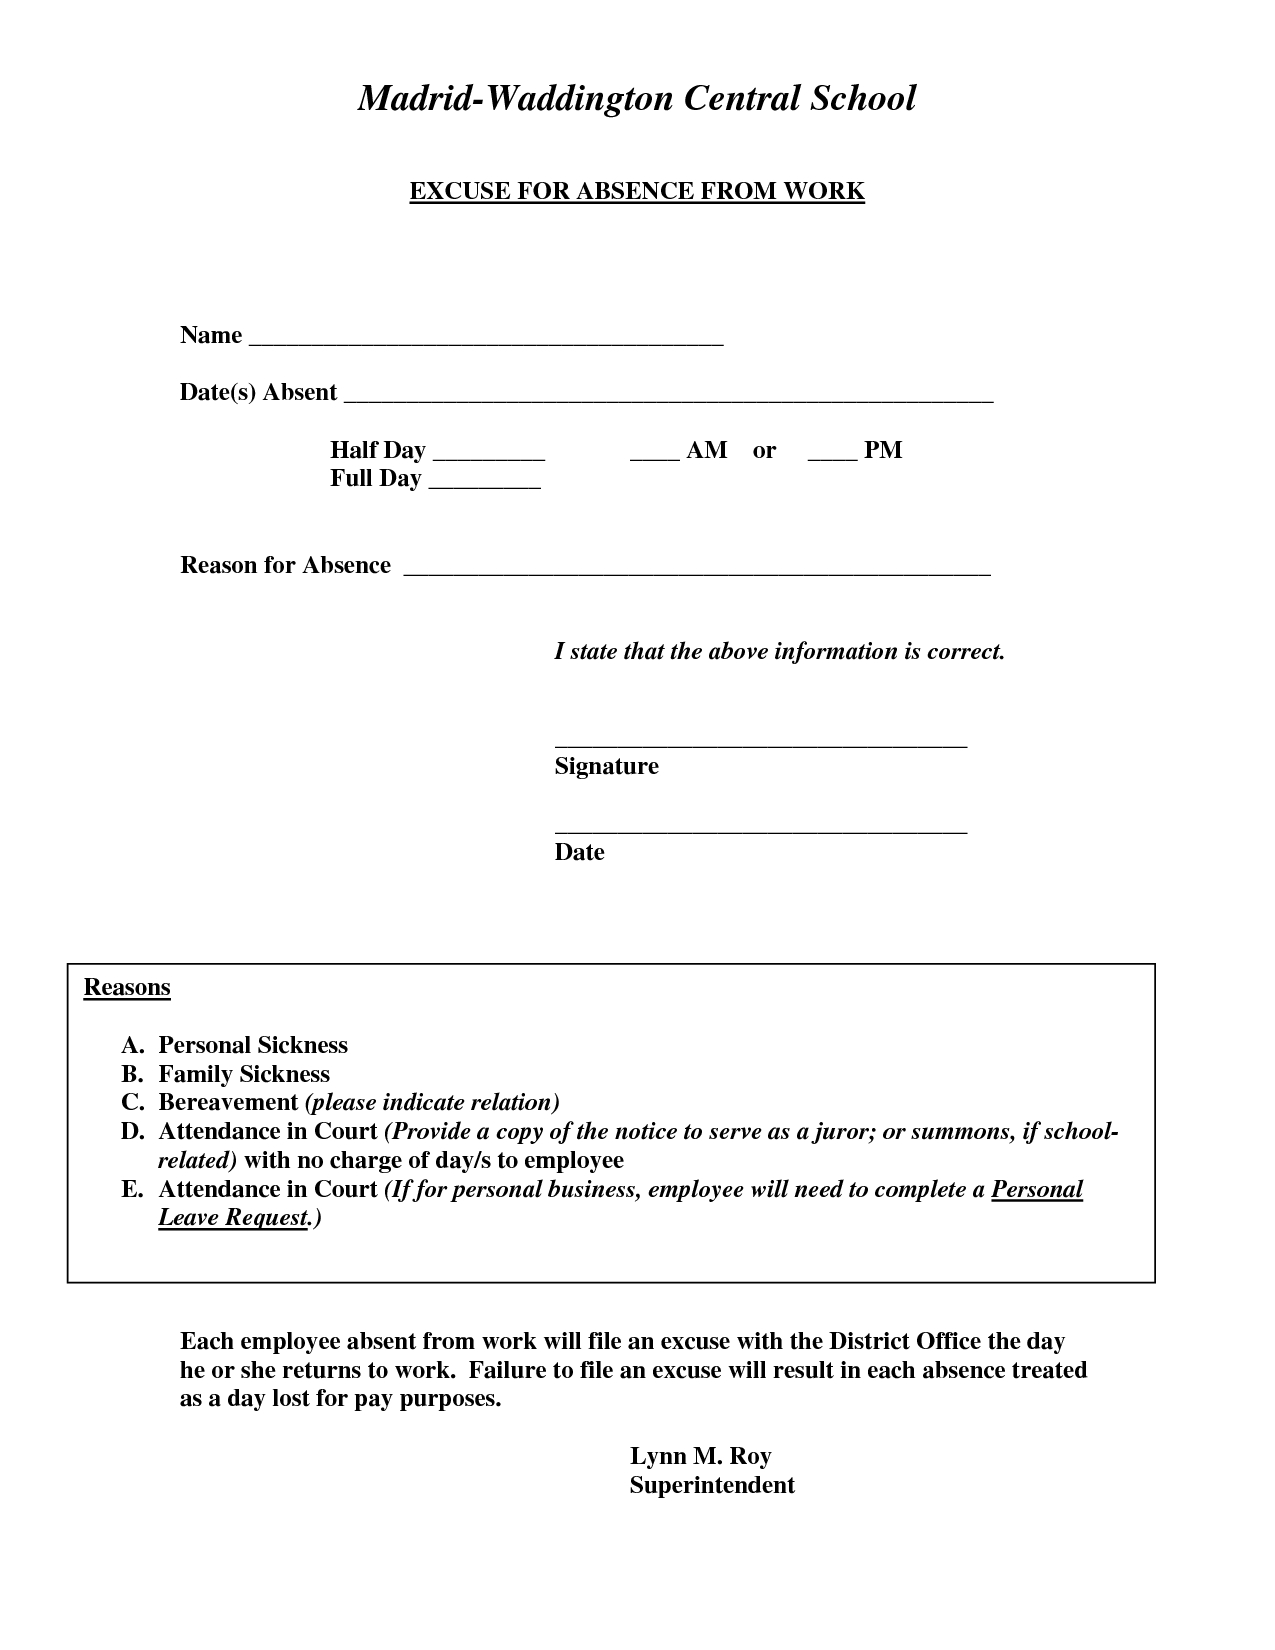 Doctors Excuse For Work Template | Excuse For Absence From Work - Free Printable Doctors Note For Work